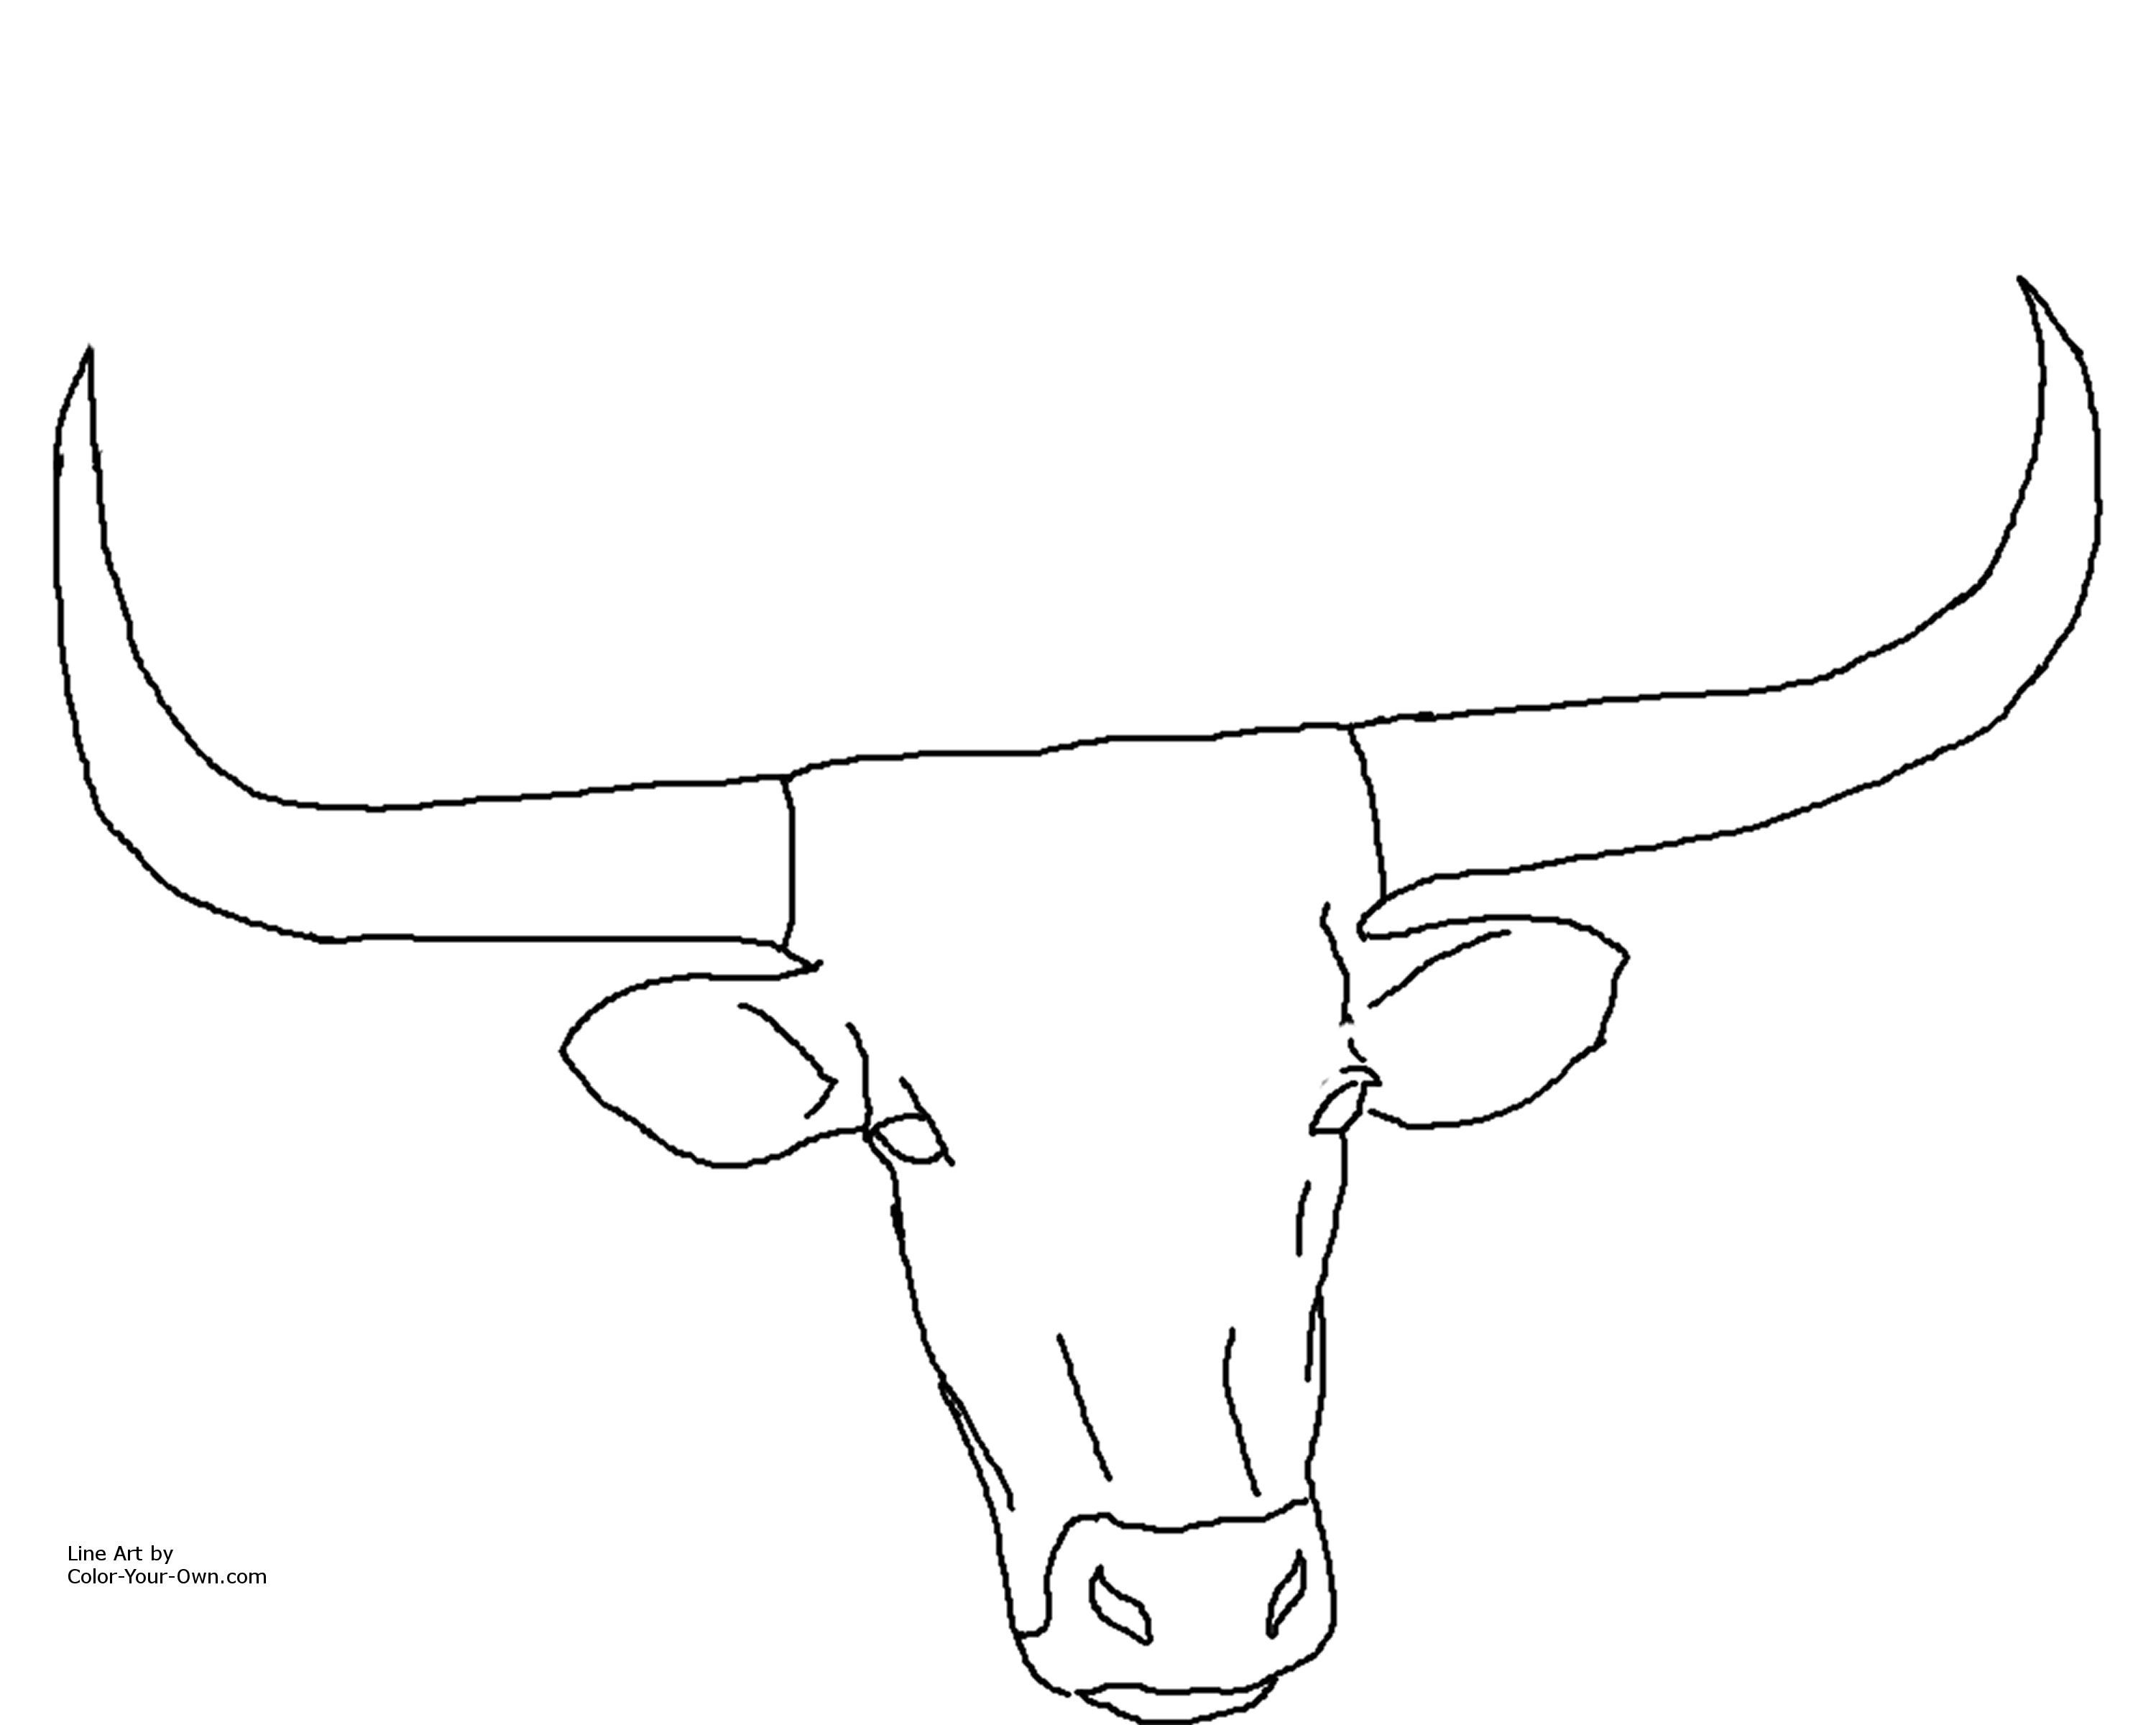 Texas Longhorn Coloring Pages Adult Coloring Pinterest Printable Of Perspective Texas Tech Coloring Pages Page to Print